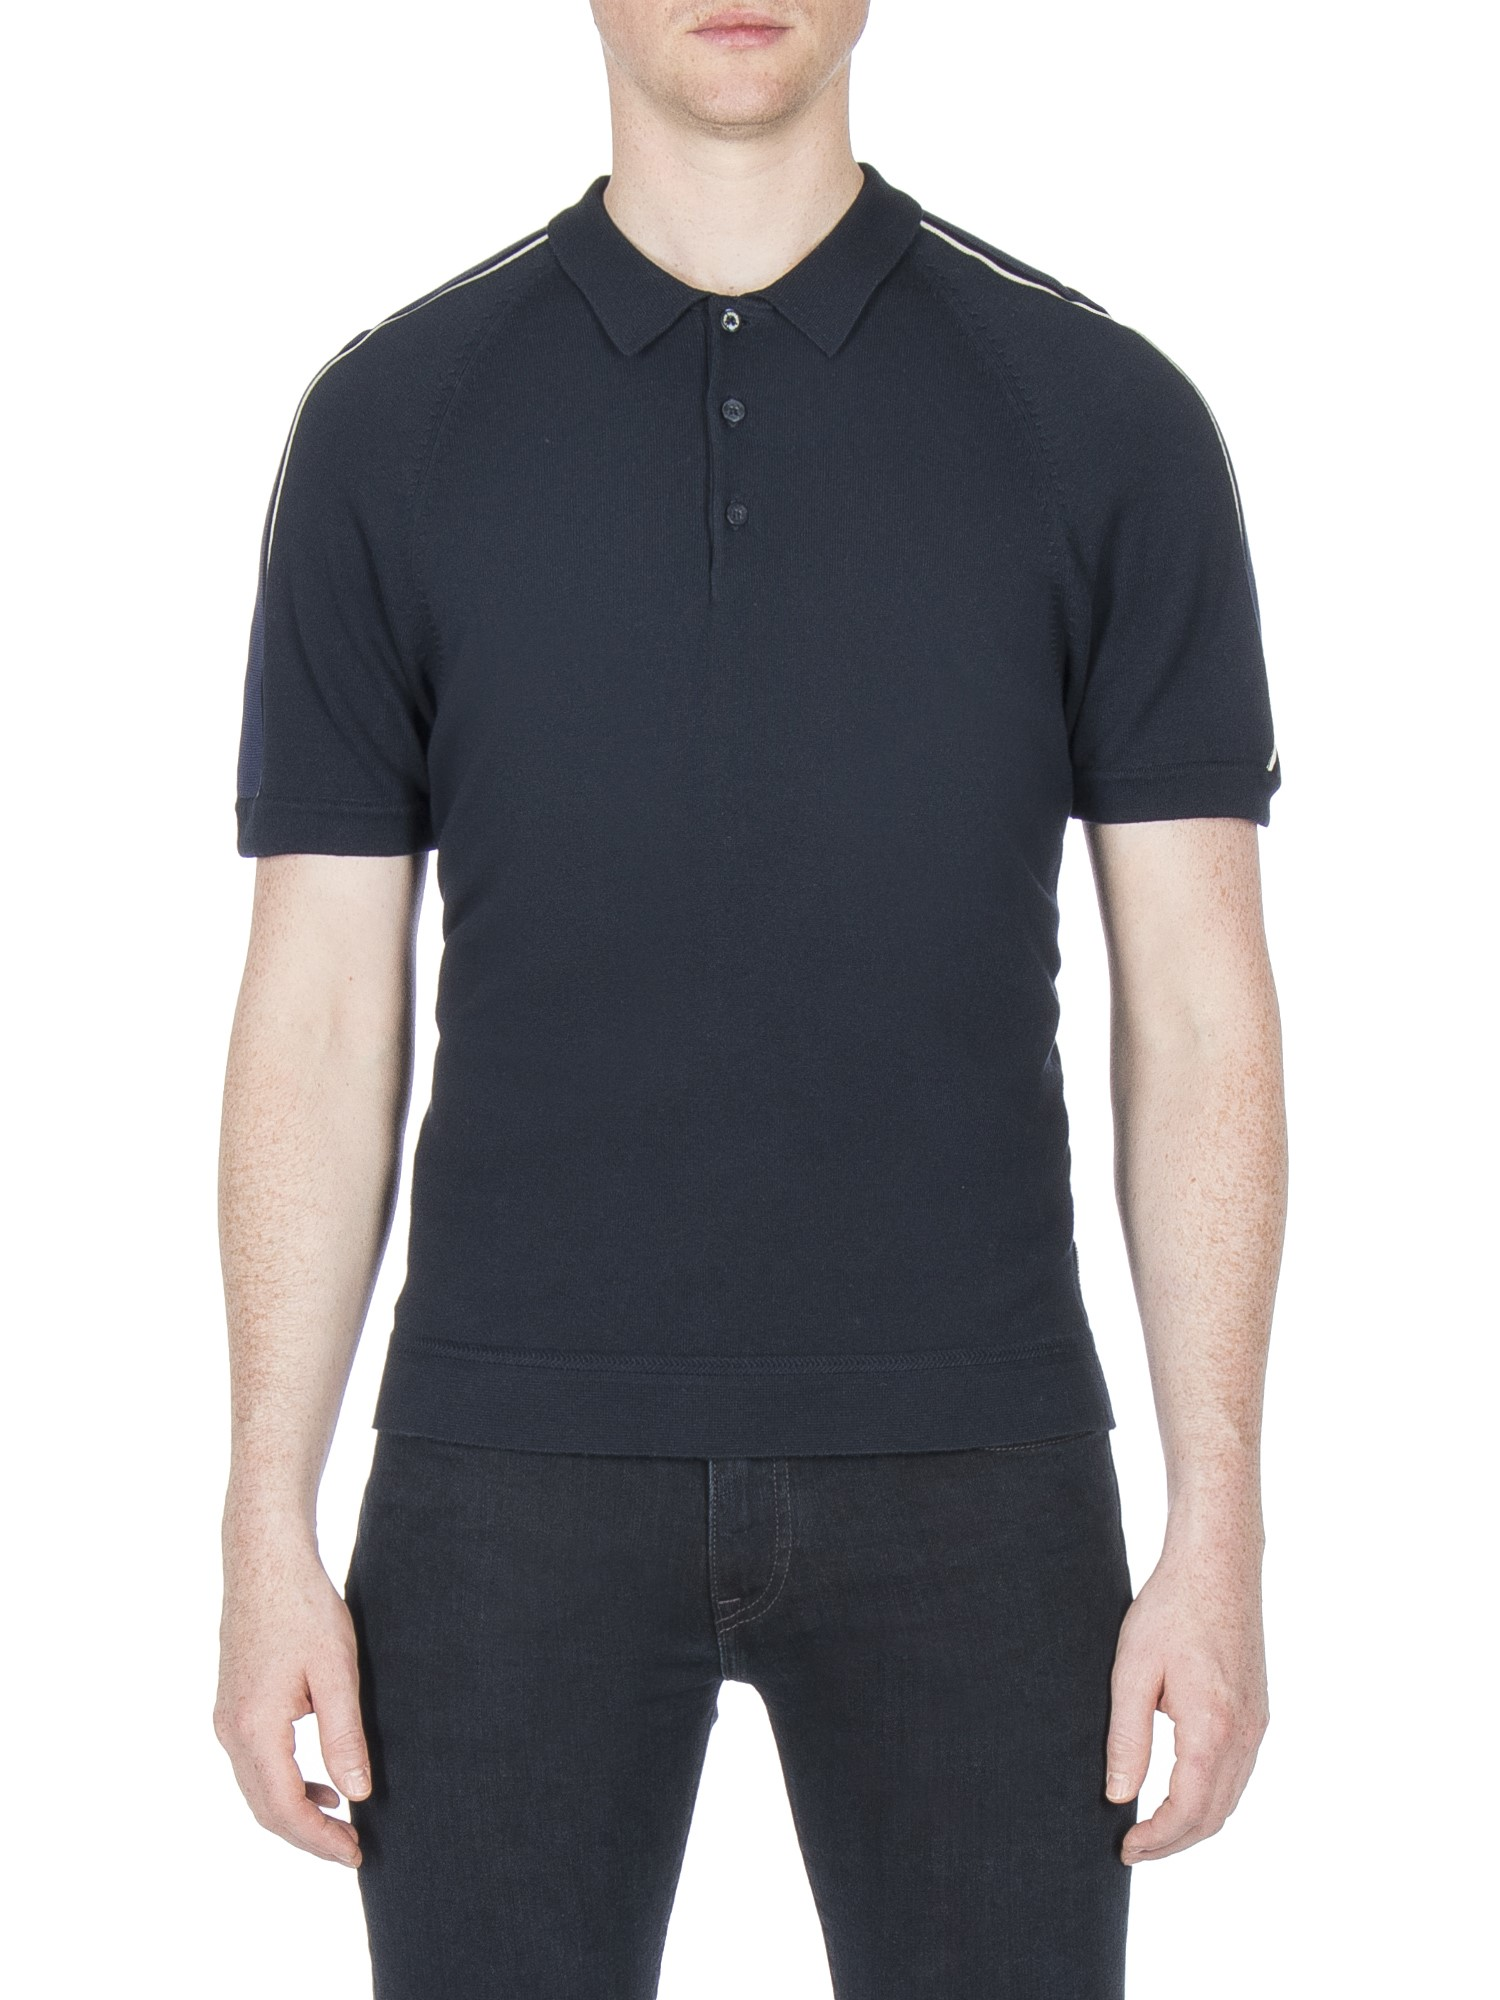 Ben Sherman Dark Navy Piped Overarm Polo Shirt Regular Fit (Mod Fit)